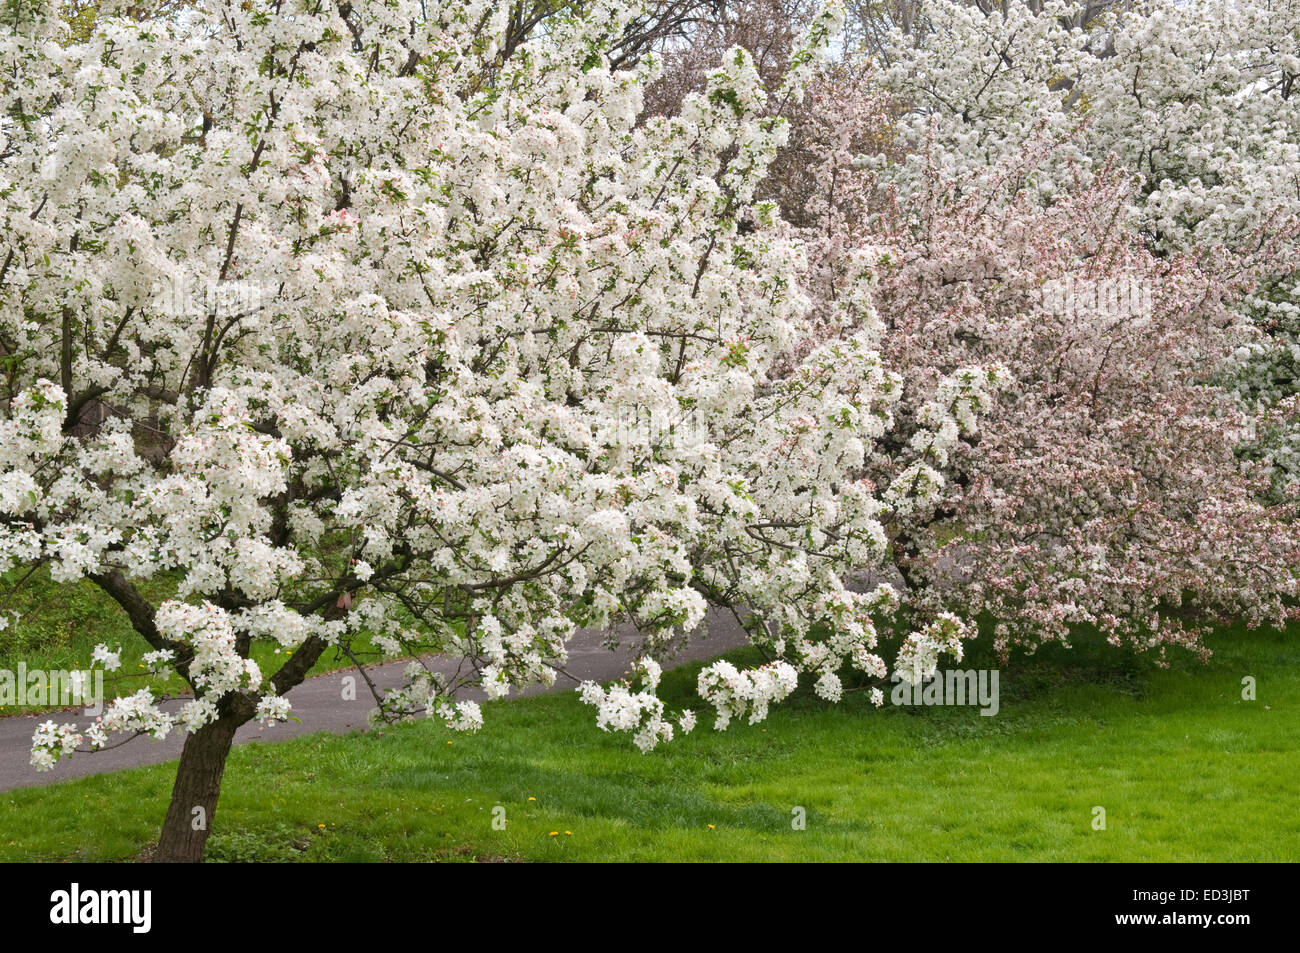 Flowering Crabapple Trees Stock Photos Flowering Crabapple Trees